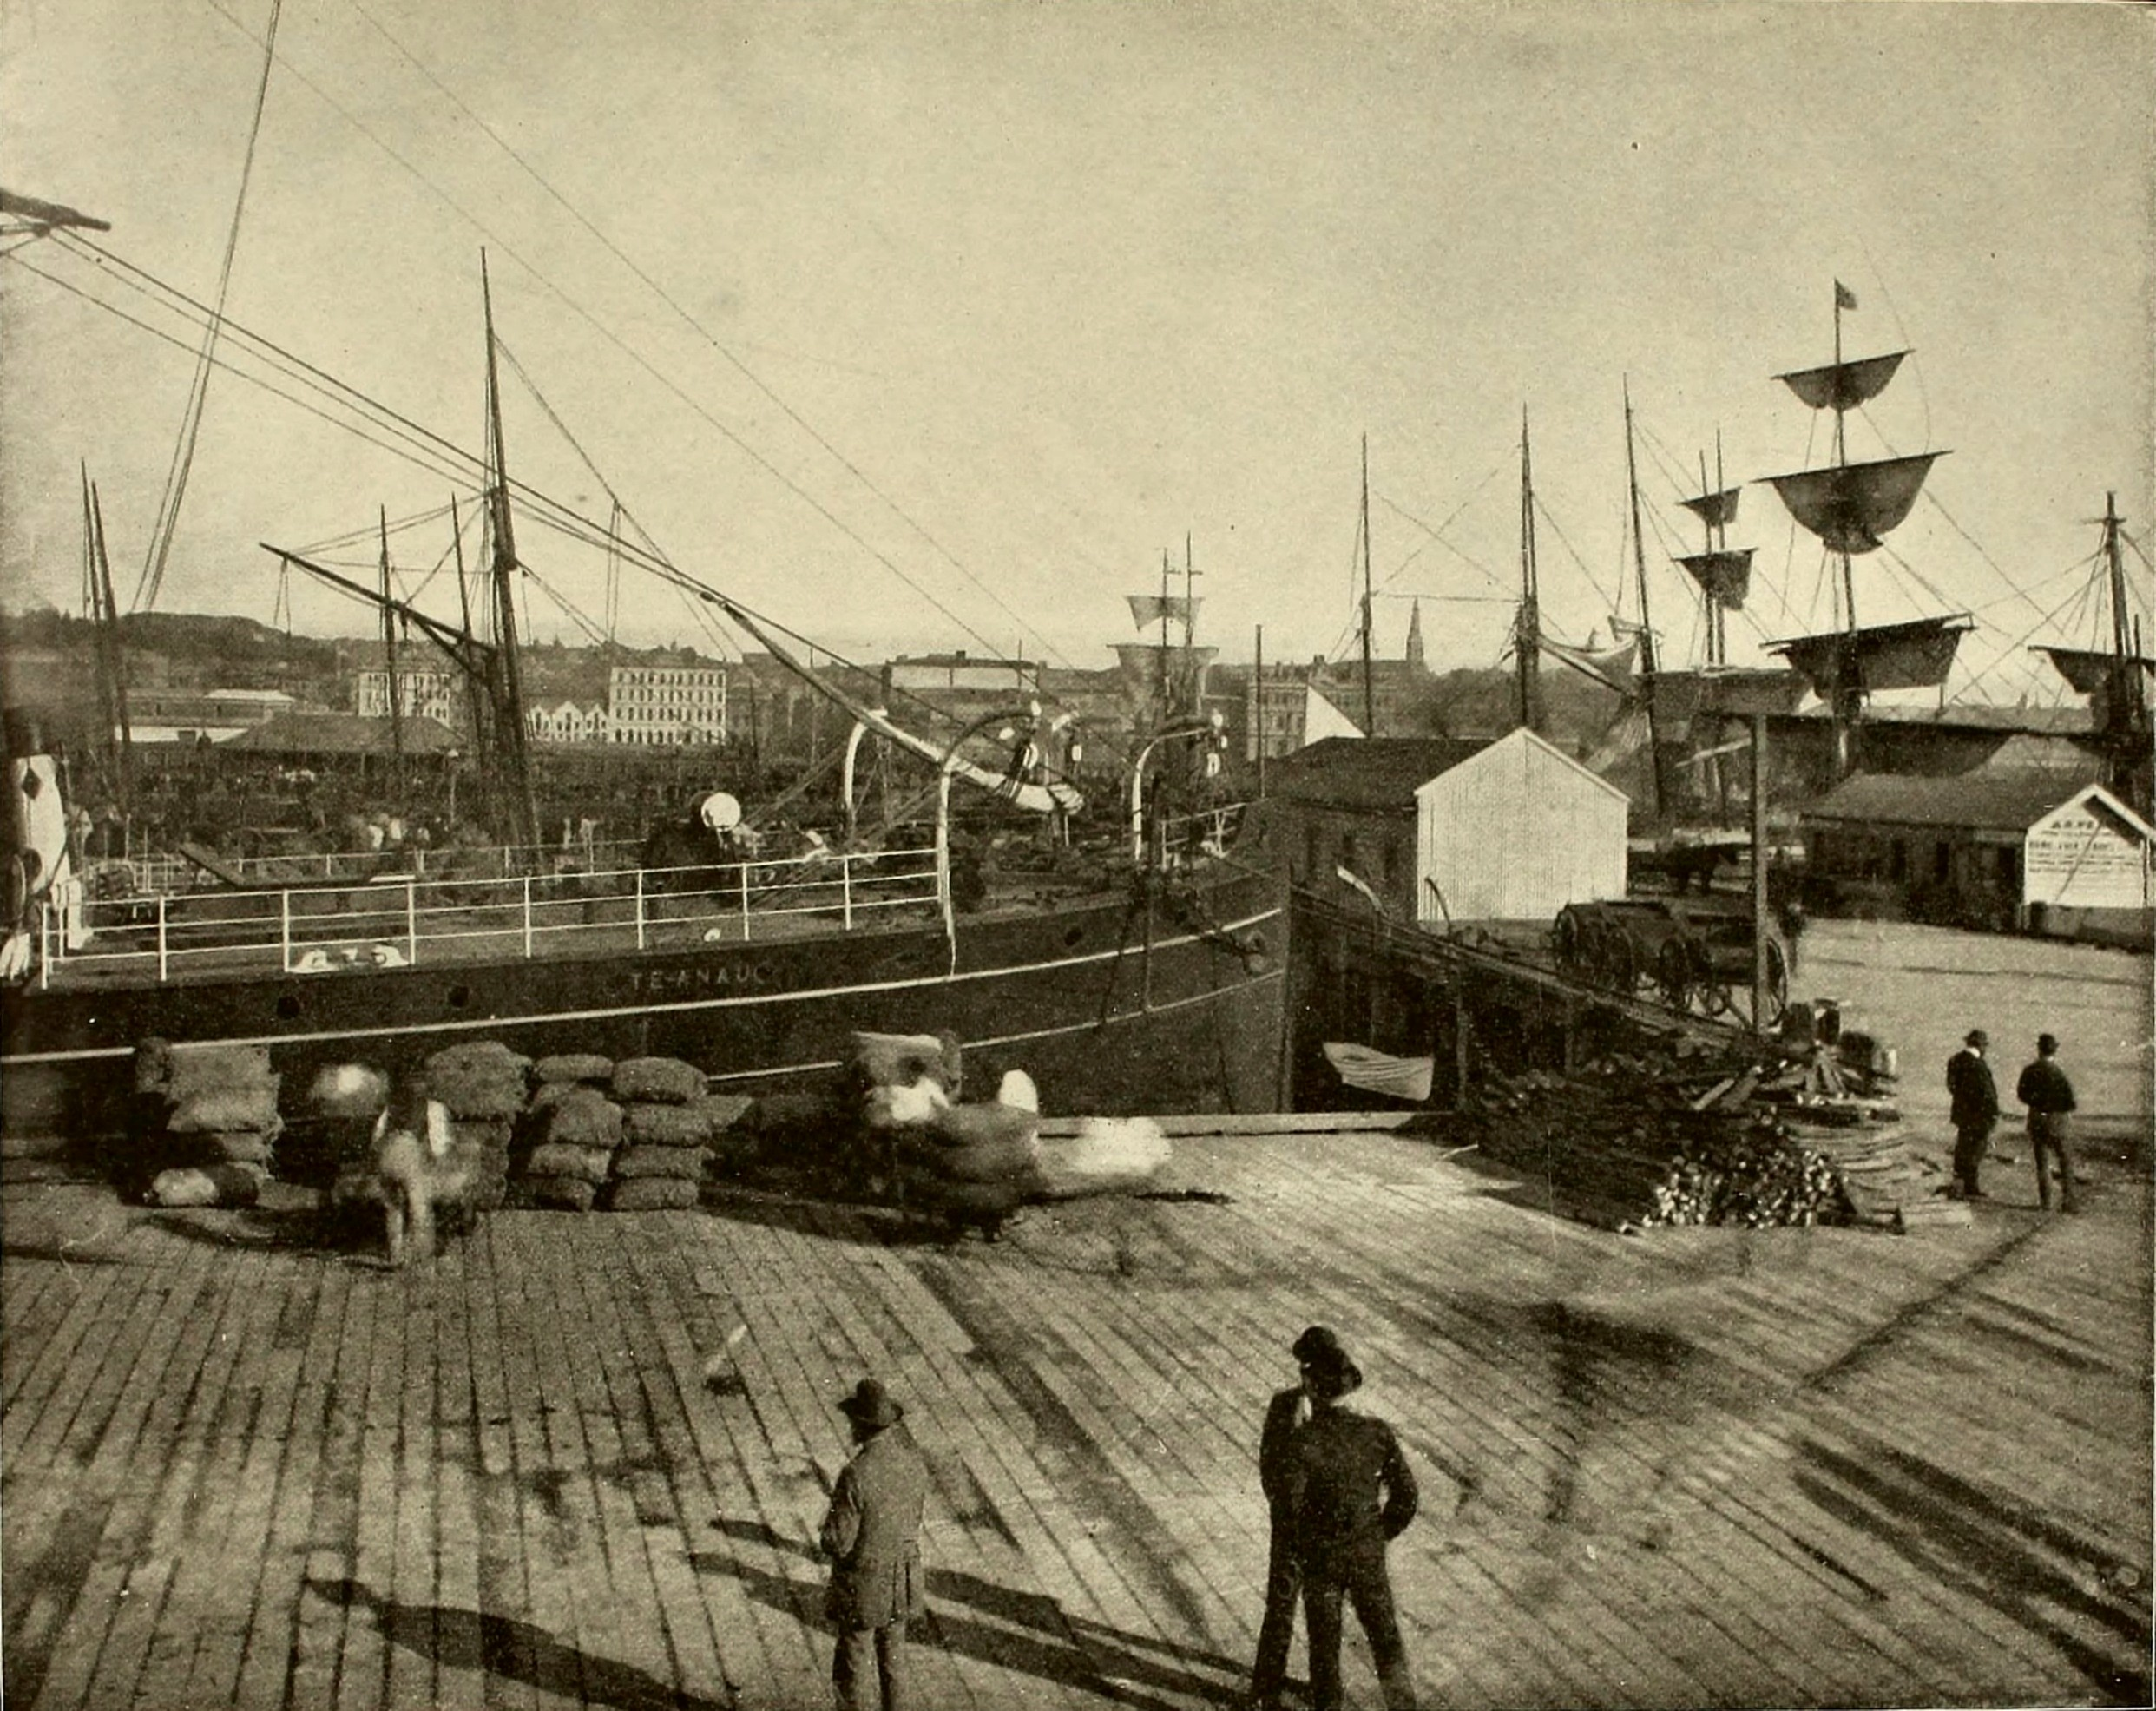 Auckland Harbor New Zealand about 1892